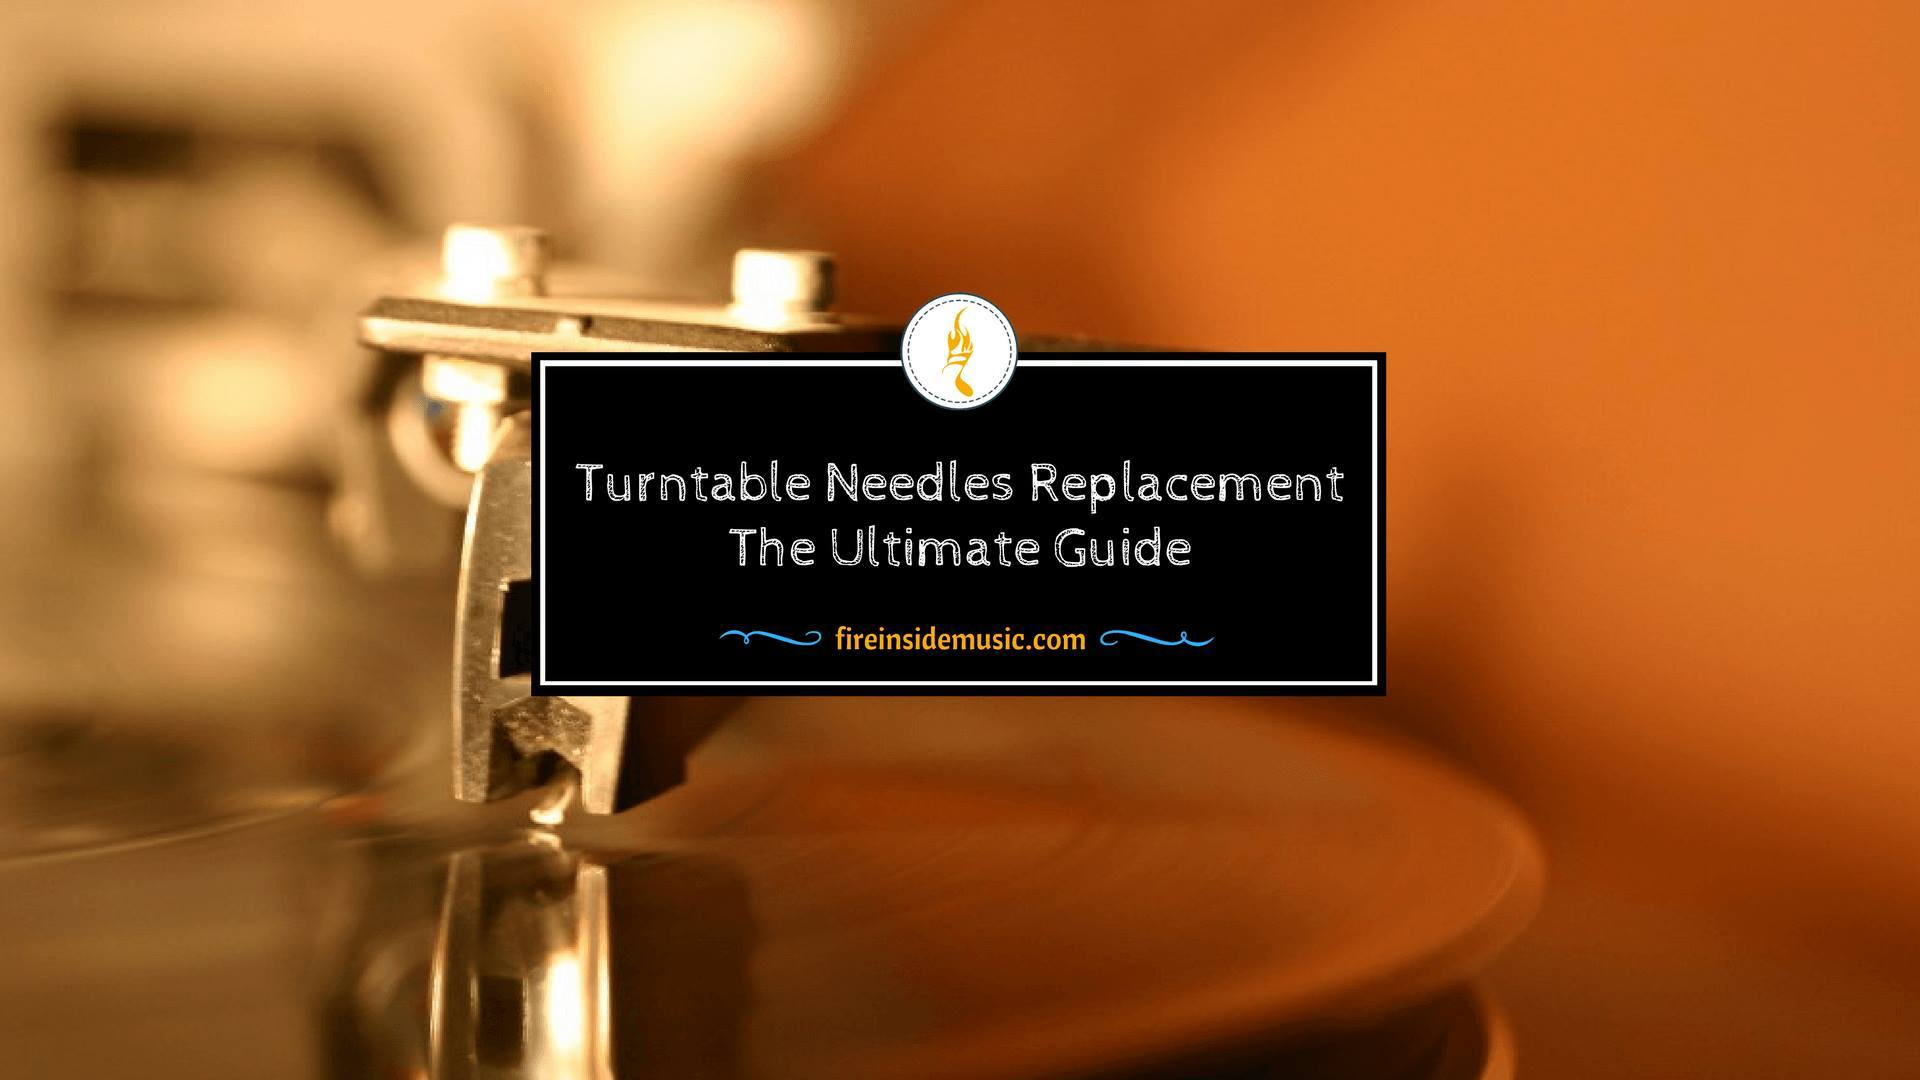 Turntable Needles Replacement: How To Do It 【The Easiest Way 】